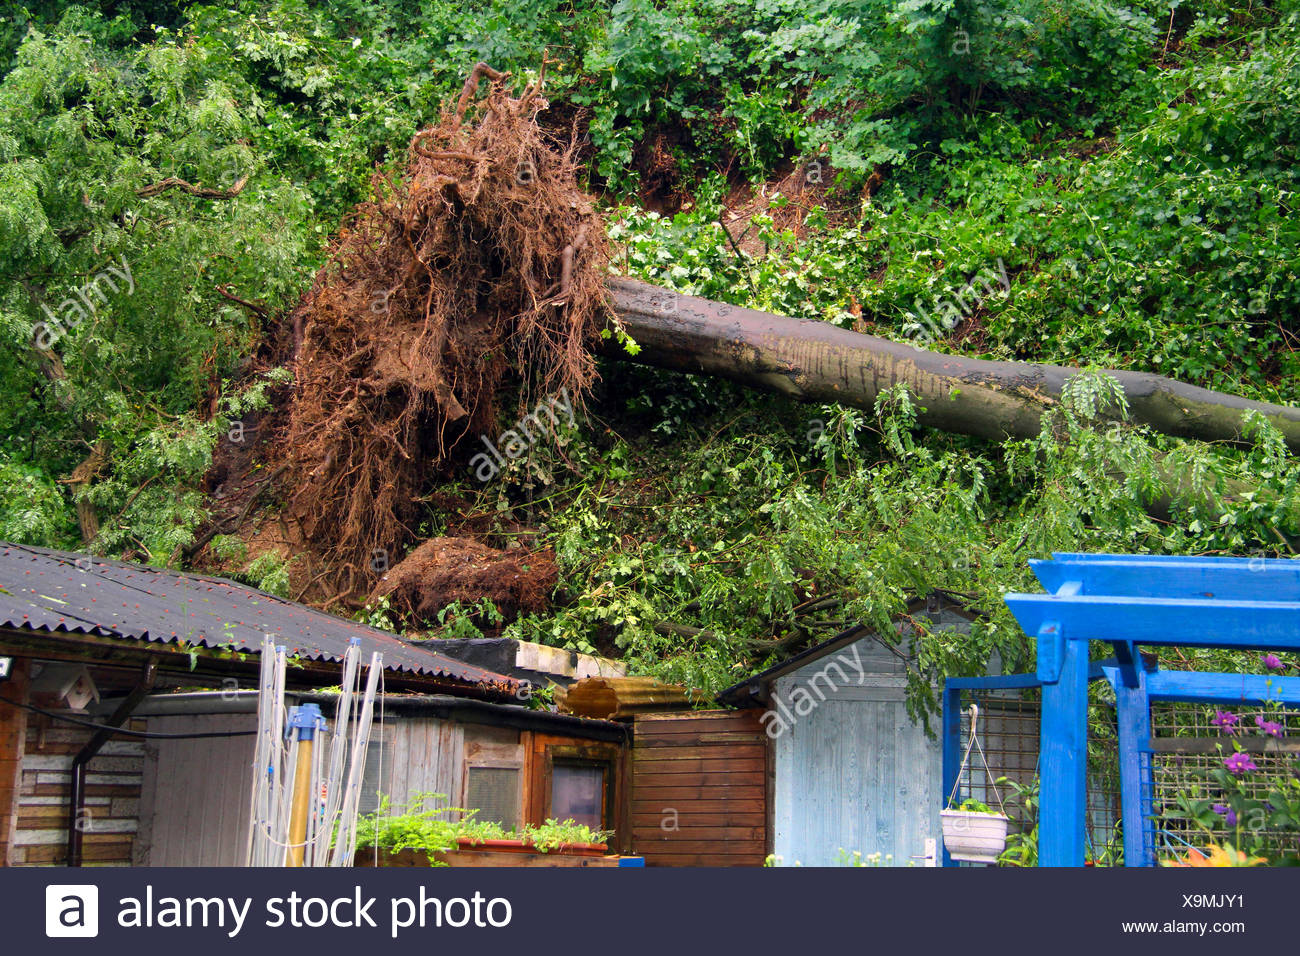 fallen trunk of an sycamore maple demolishing garden huts, storm front Ela at 2014-06-09, Germany, North Rhine-Westphalia, Ruhr Area, Essen - Stock Image